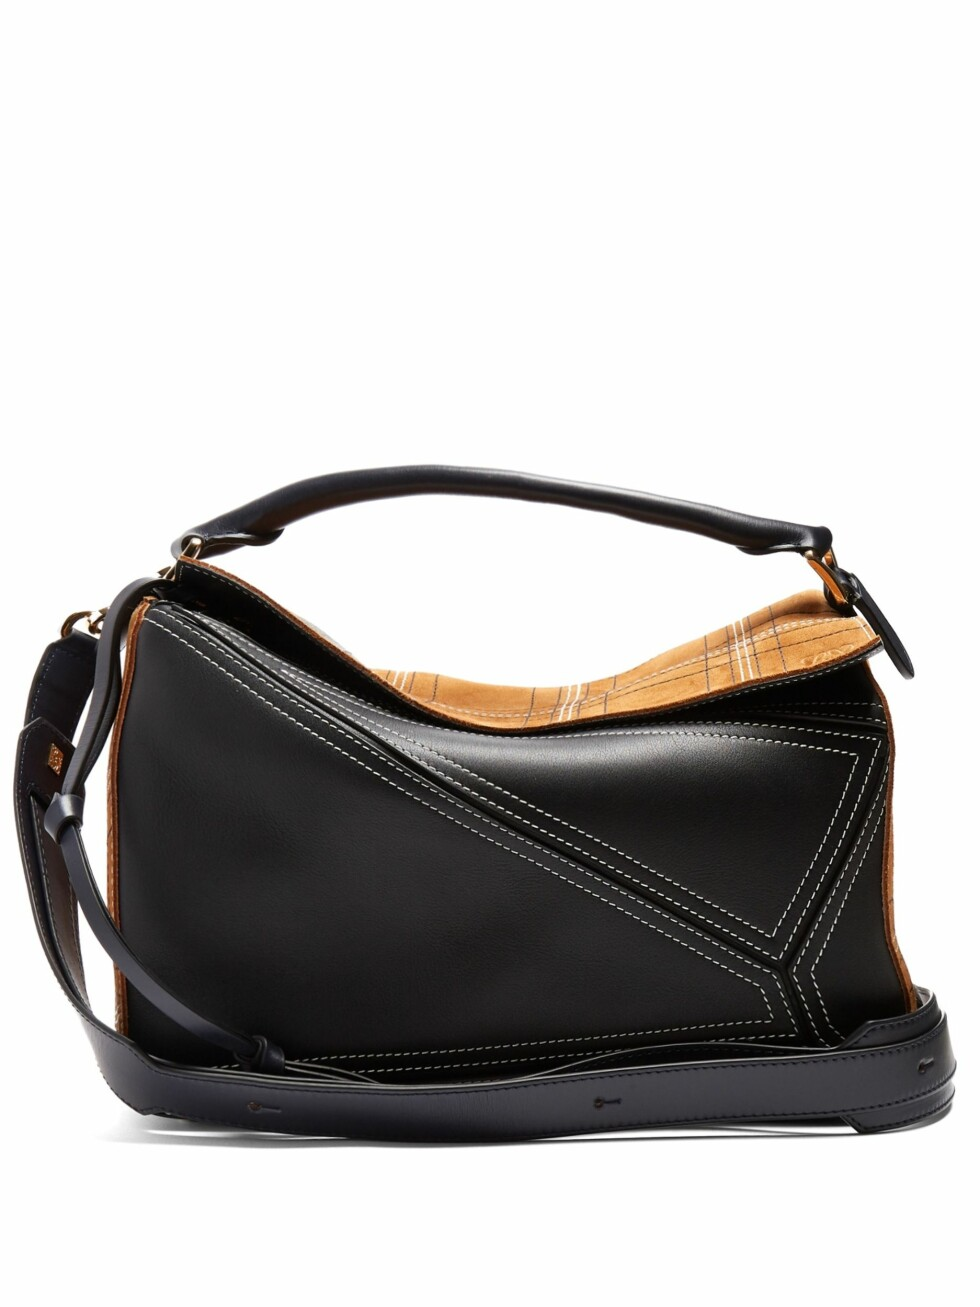 Veske fra Loewe  13200,-  https://www.matchesfashion.com/intl/products/Loewe-Puzzle-contrast-panel-leather-and-suede-bag--1168845